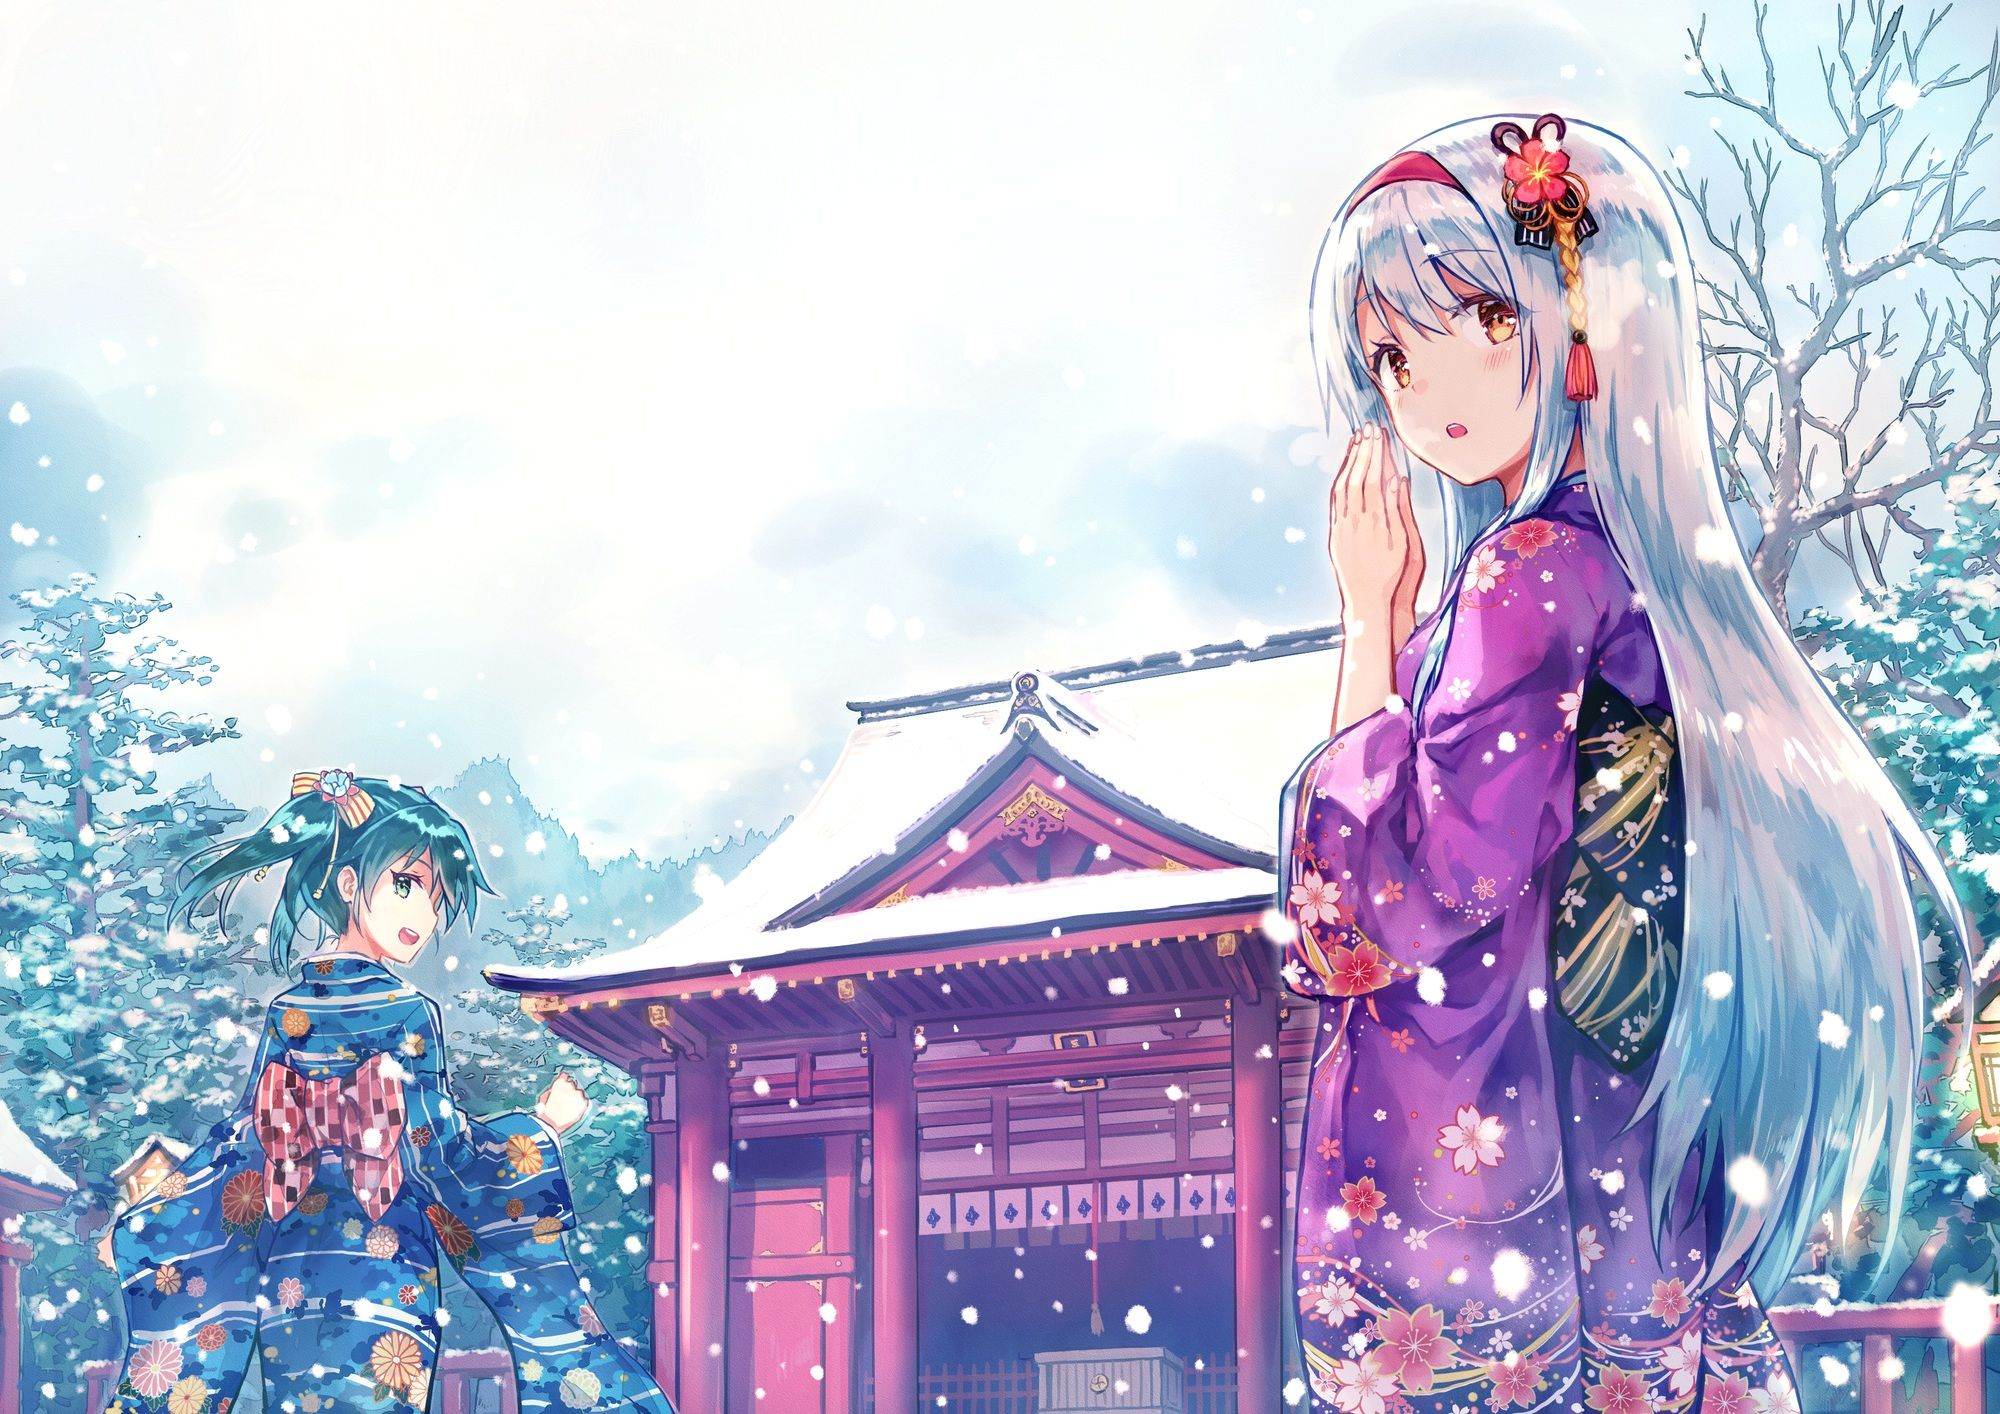 Konachan Com 209956 2girls Aqua Eyes Aqua Hair Bow Building Headband Hiten Goane Ryu Kimono Long Hair Orange Eyes Shrine S Anime Anime Wallpaper Anime Images